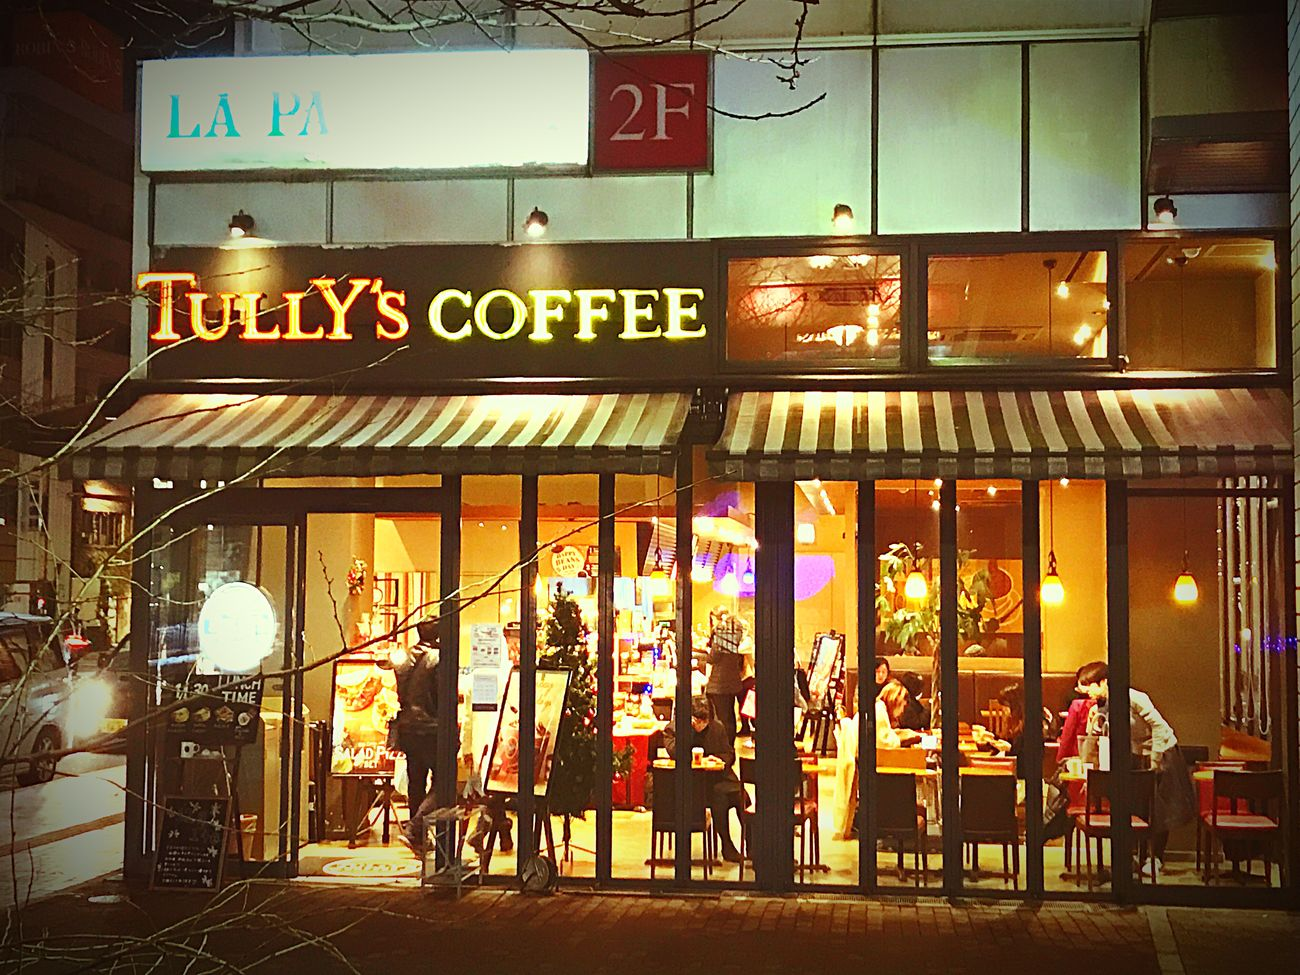 Illuminated Text Built Structure Restaurant Building Exterior Communication Store Architecture People Night City Neon Adult Nightlife Outdoors